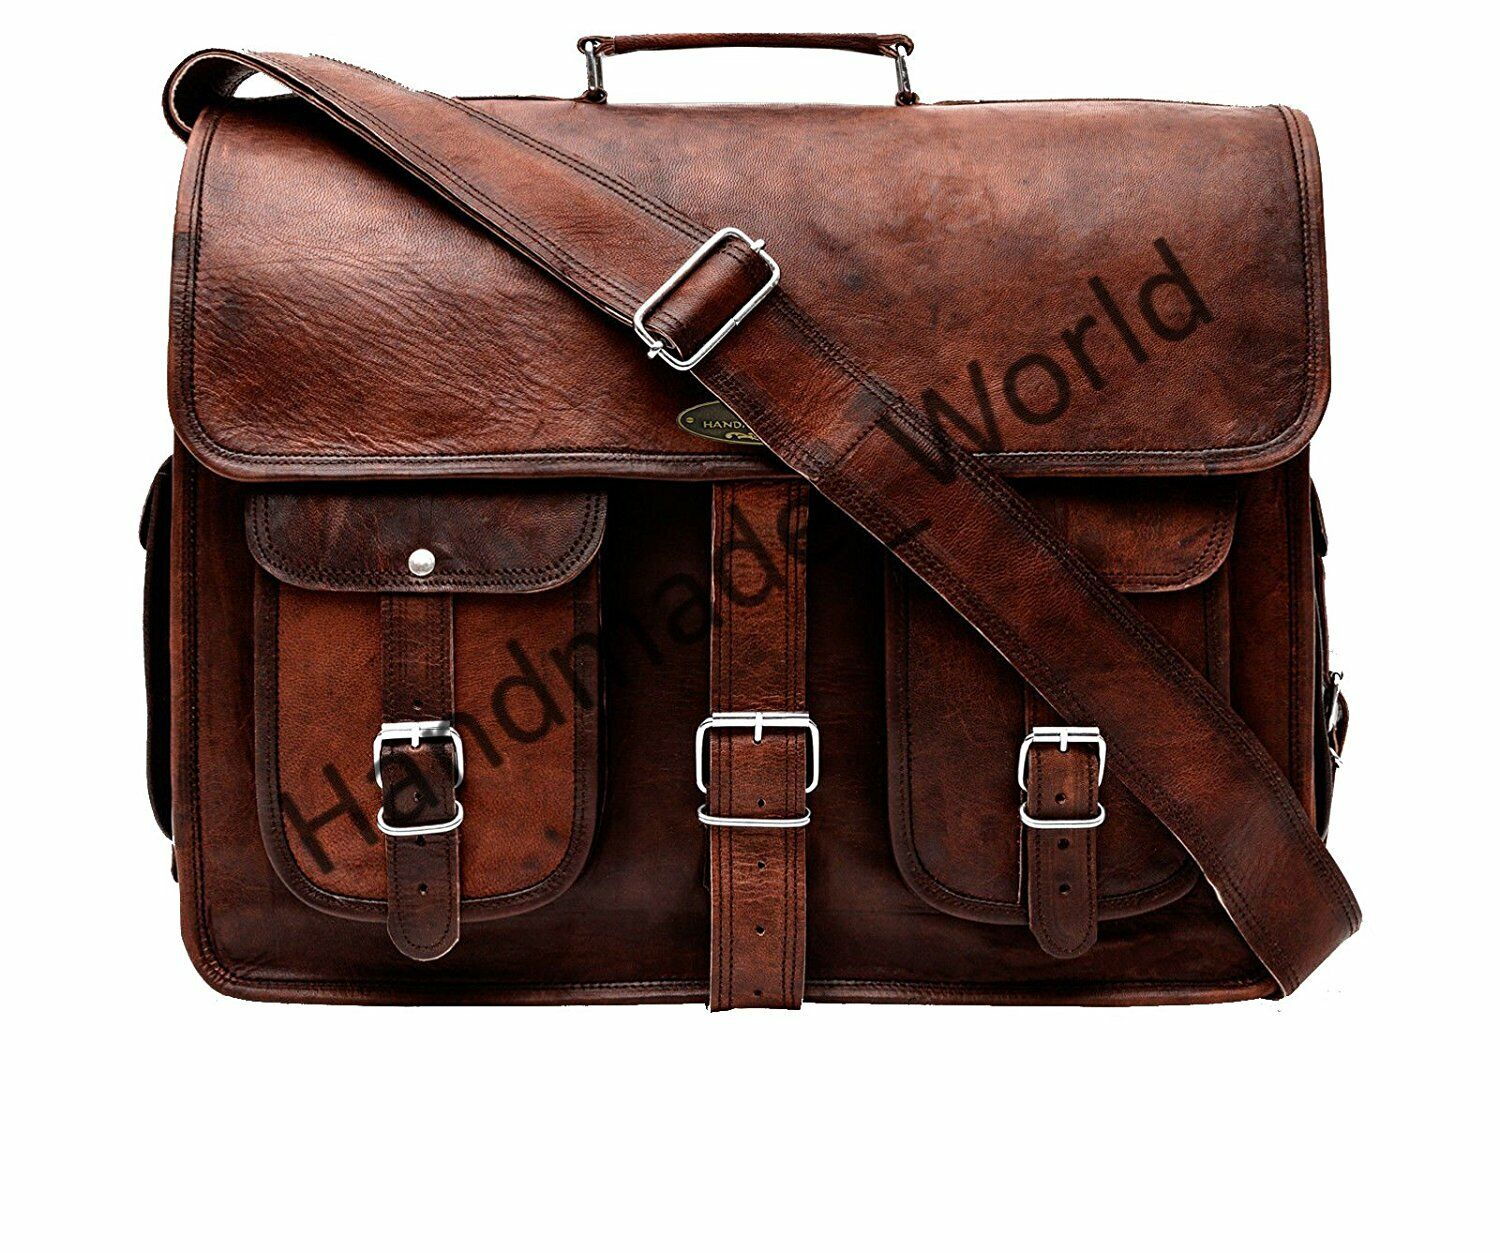 Details About Handmade World Leather Messenger Bags For Women Briefcase Laptop Computer Bag